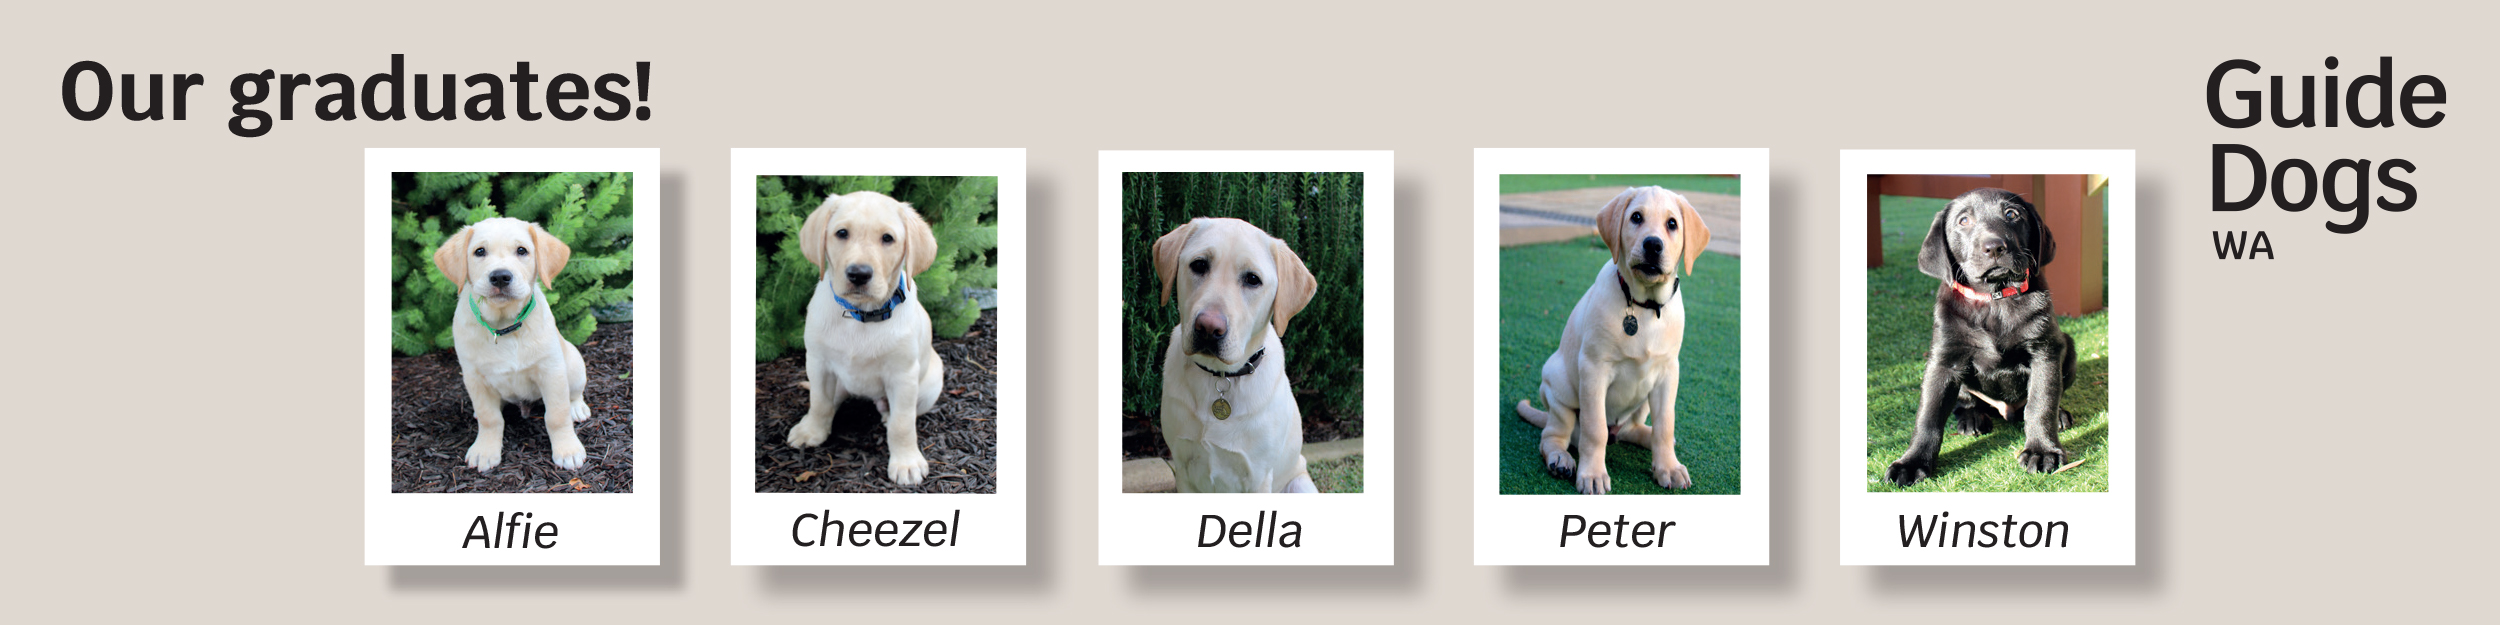 Text; Our graduates with 5 photos of graduating Guide Dogs when they were very young pups.